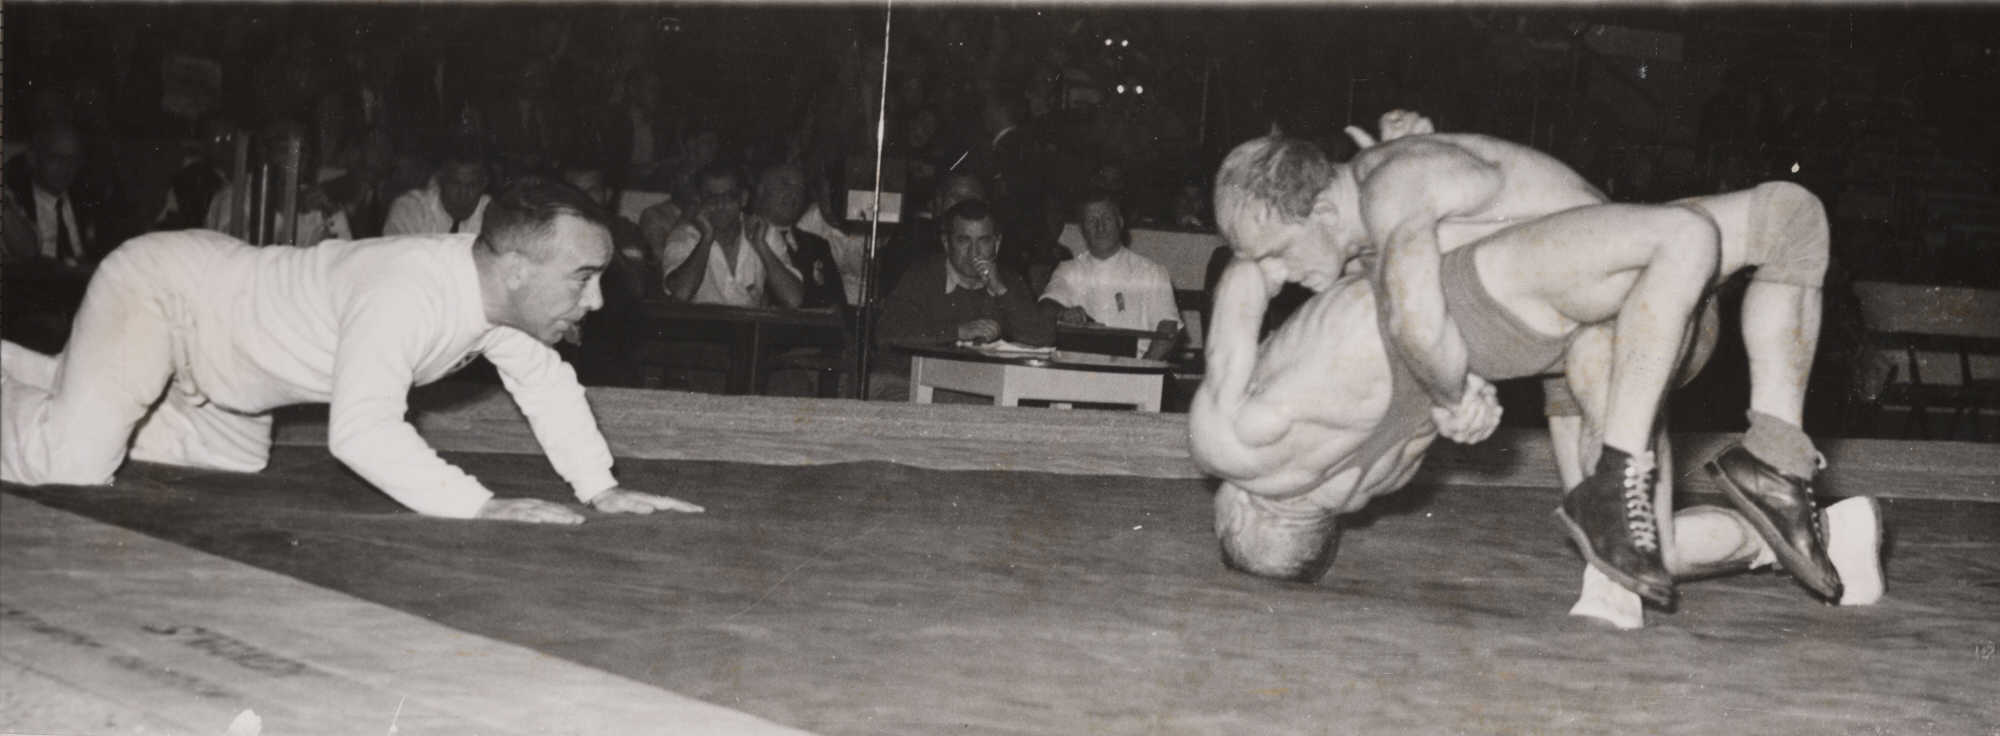 Wrestling at the 1948 Summer Olympics - Wikipedia